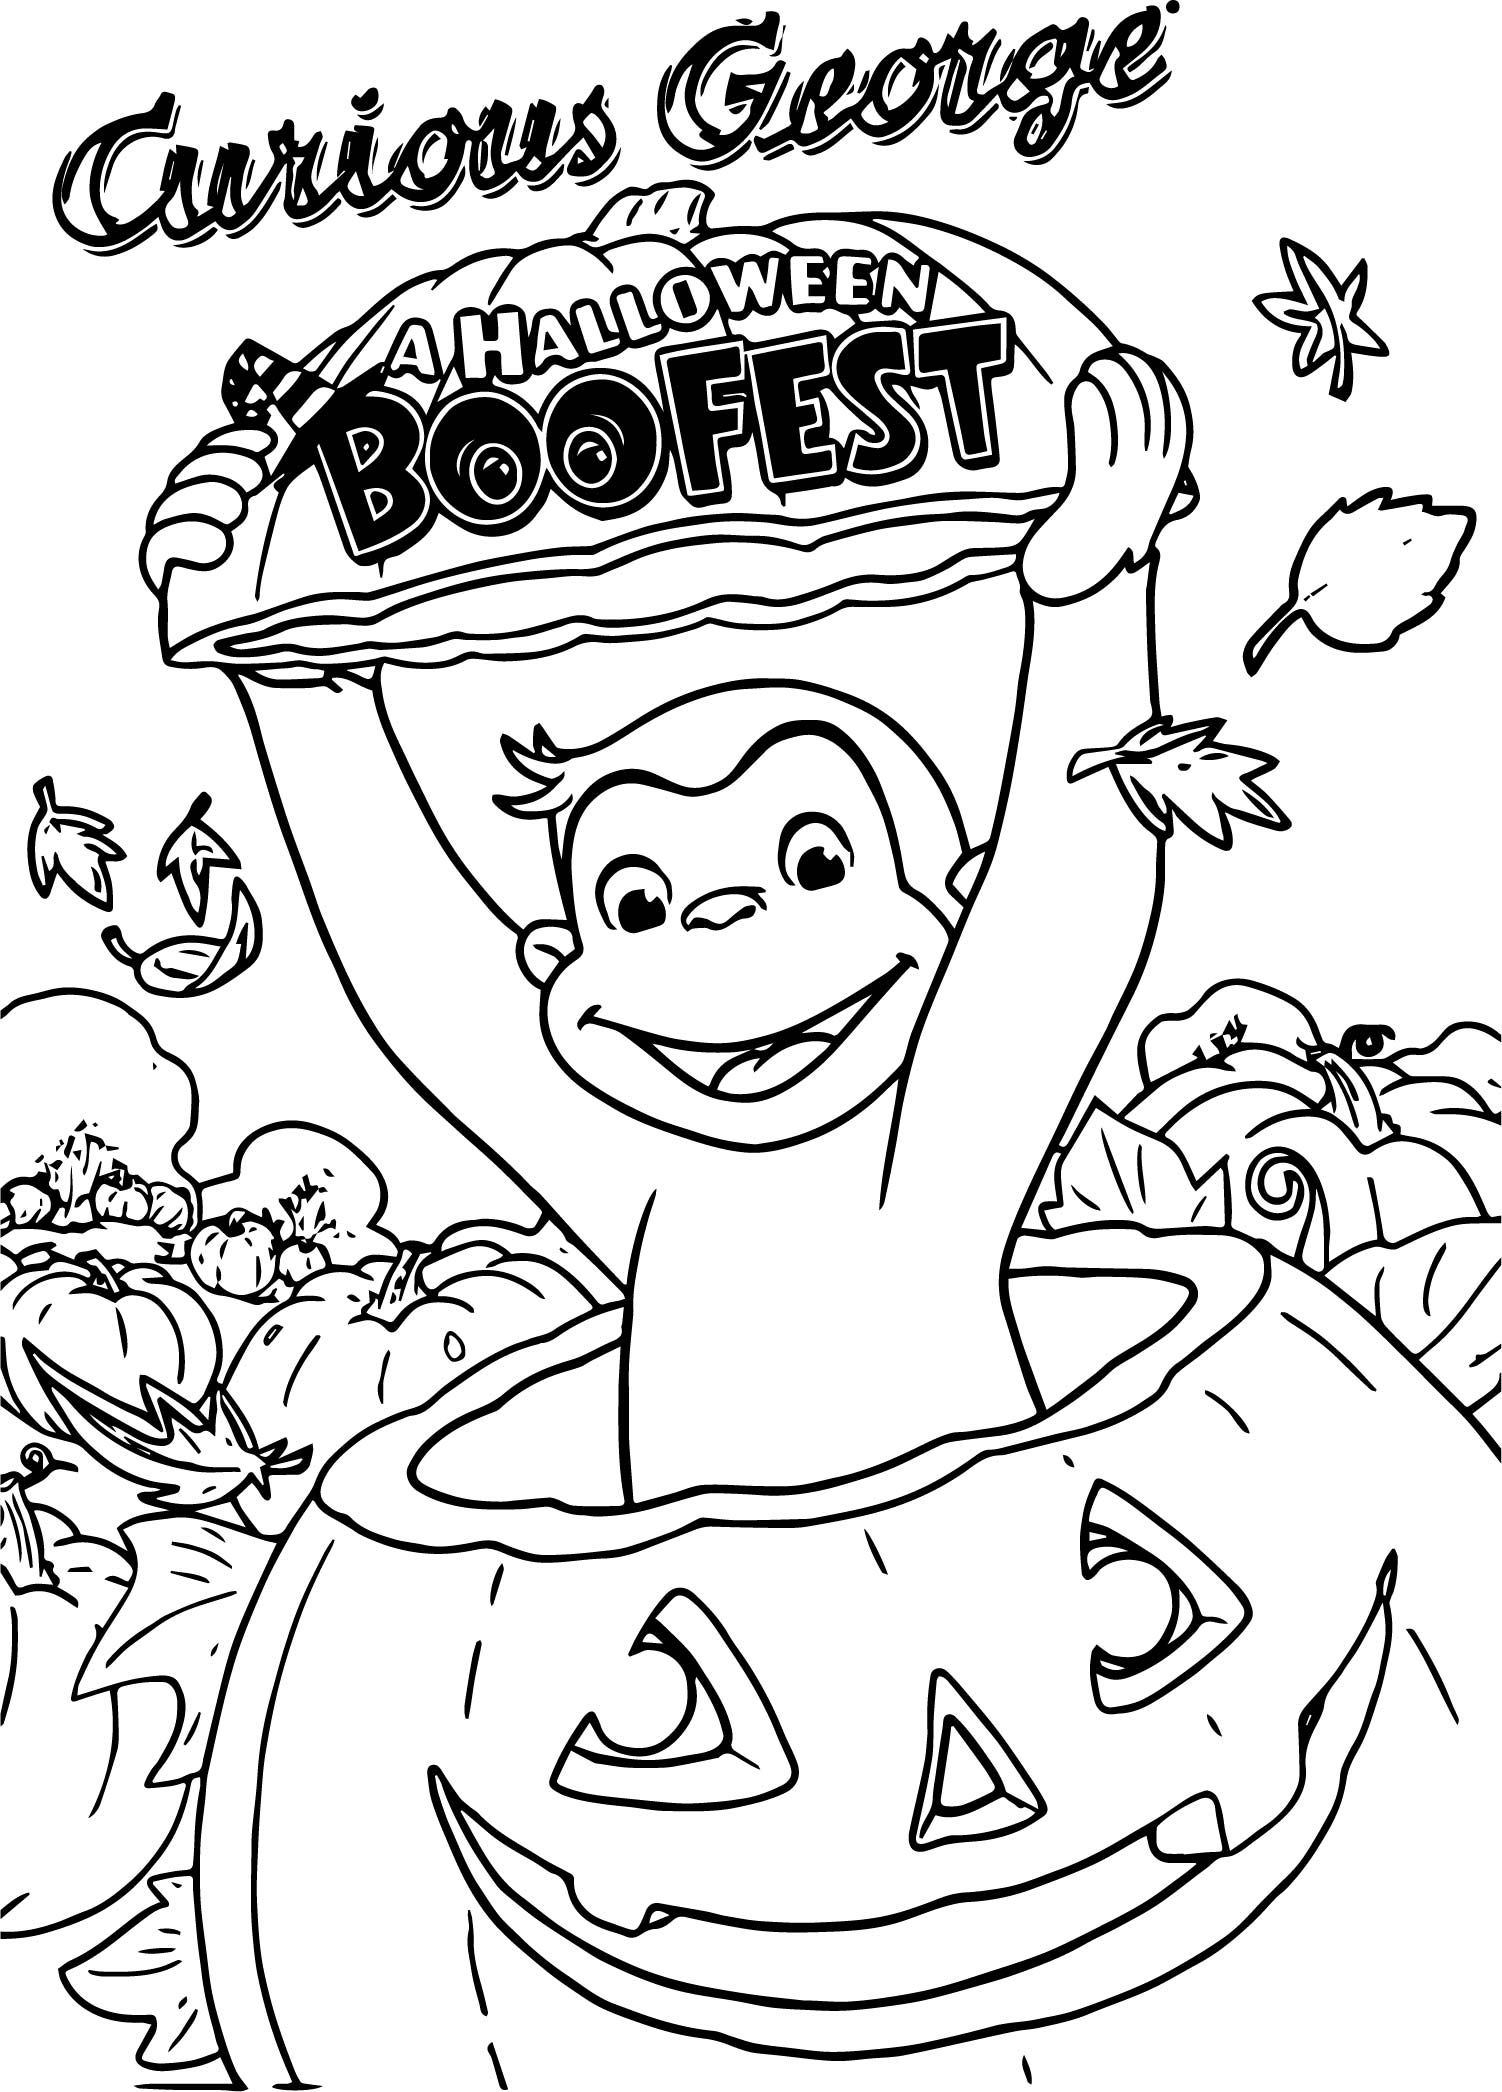 Halloween Vampire Coloring Pages Download pictures of tweety bird to ...